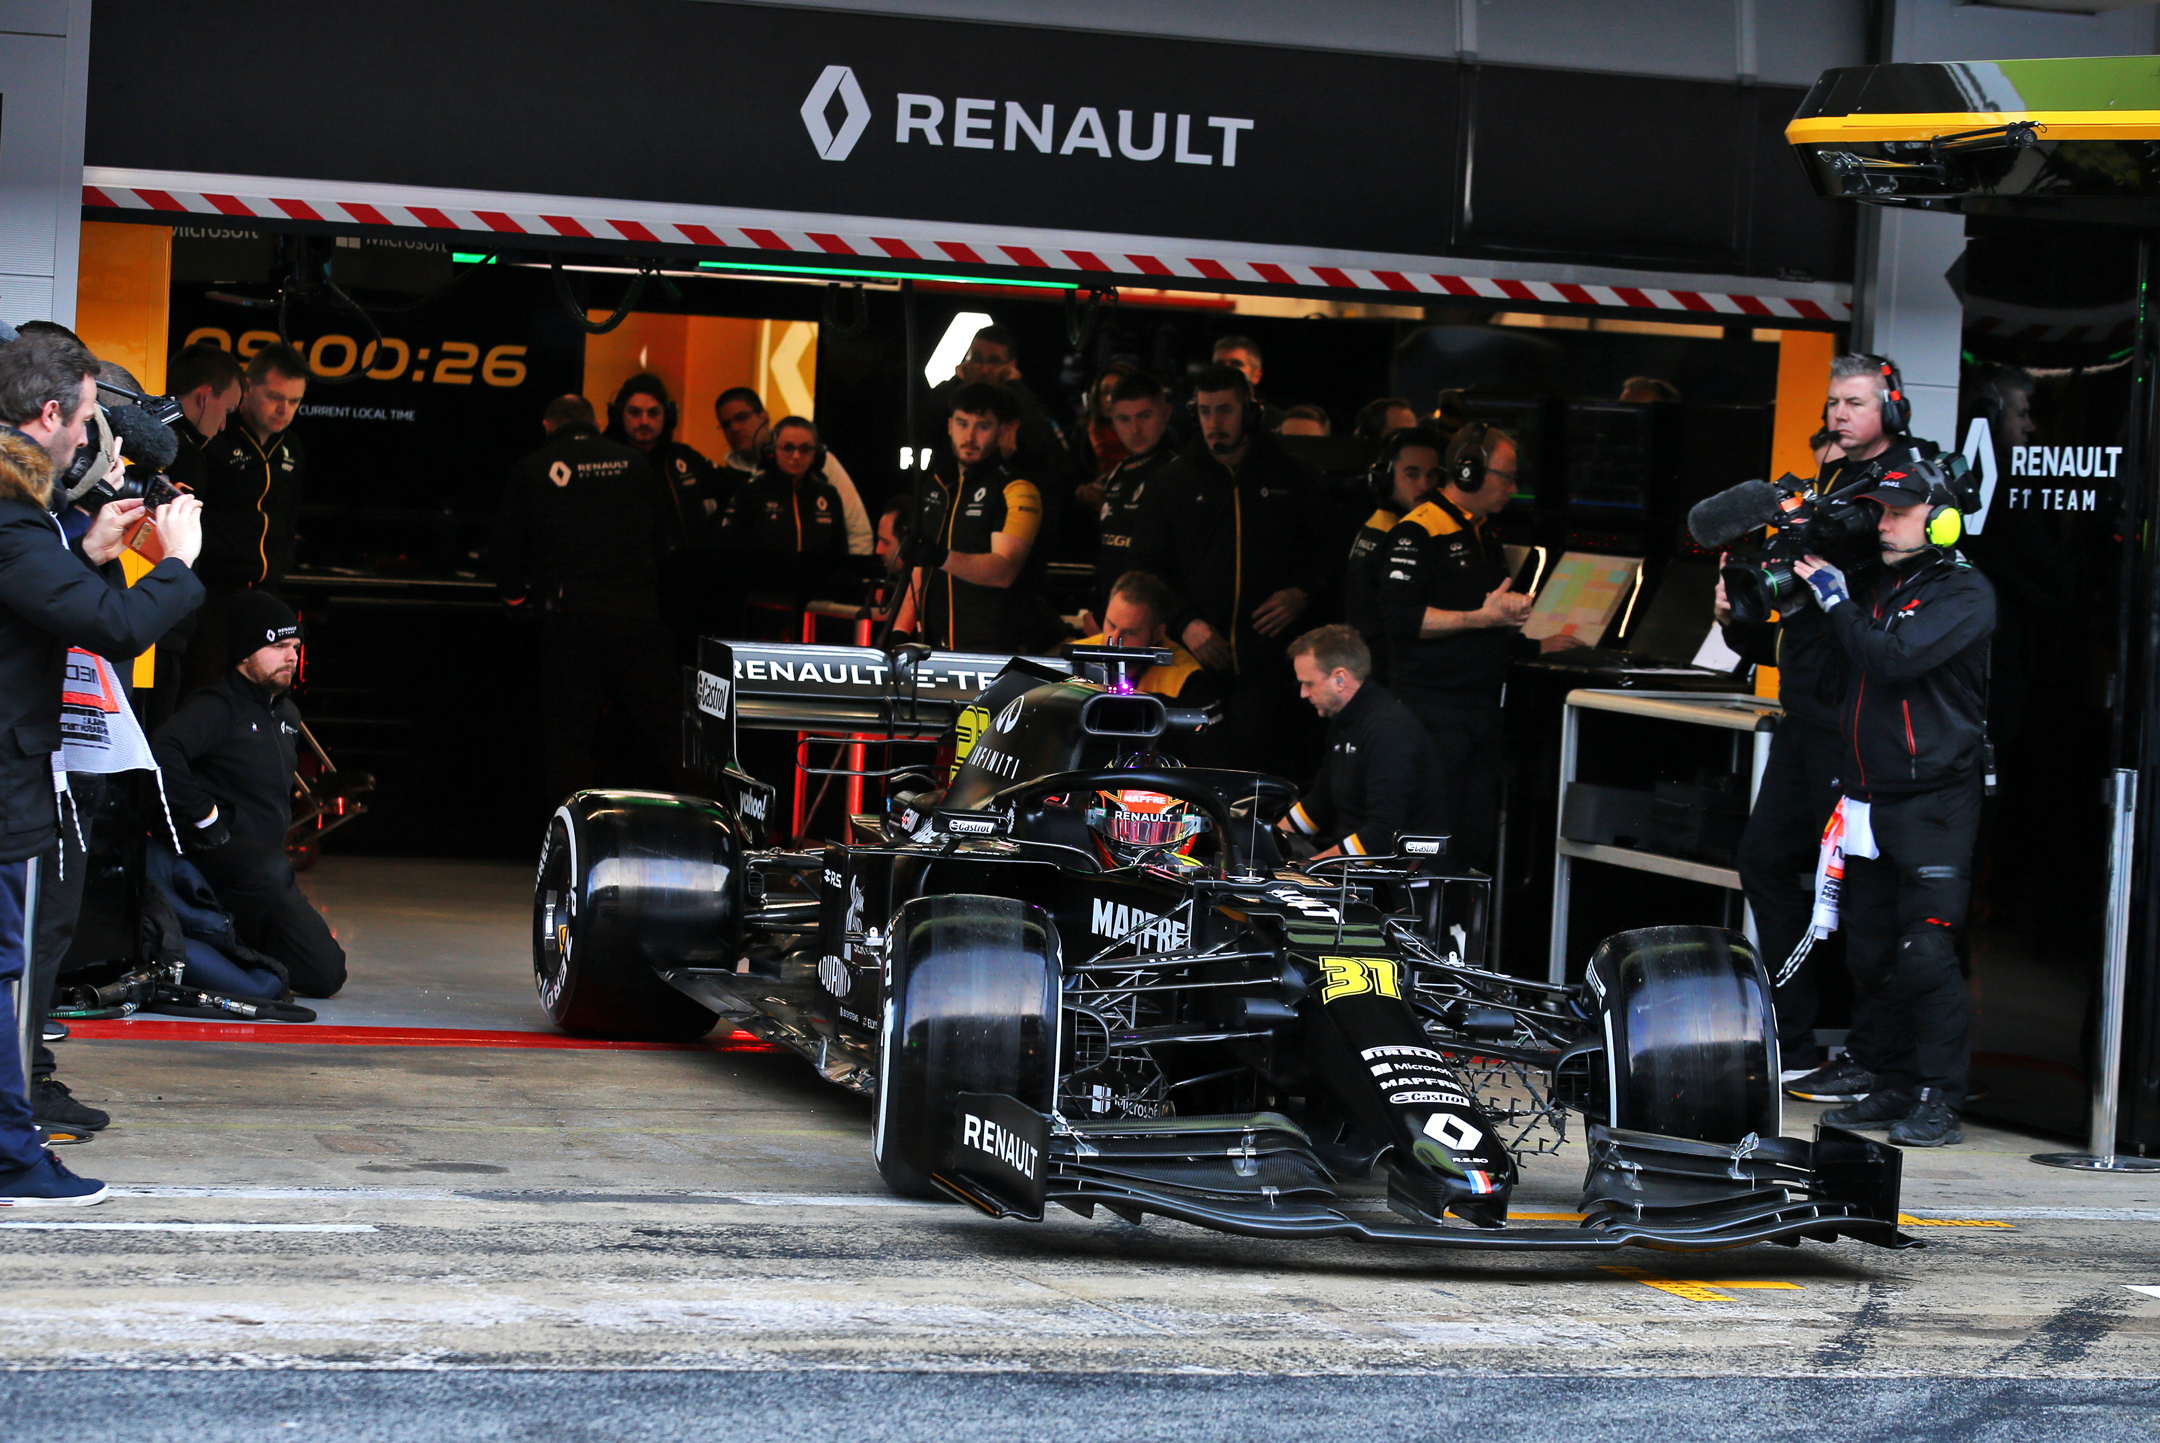 F1 - Renault F1 Team - R.S. 20 - 2020 - pitlane to track - Testing livery - official photo